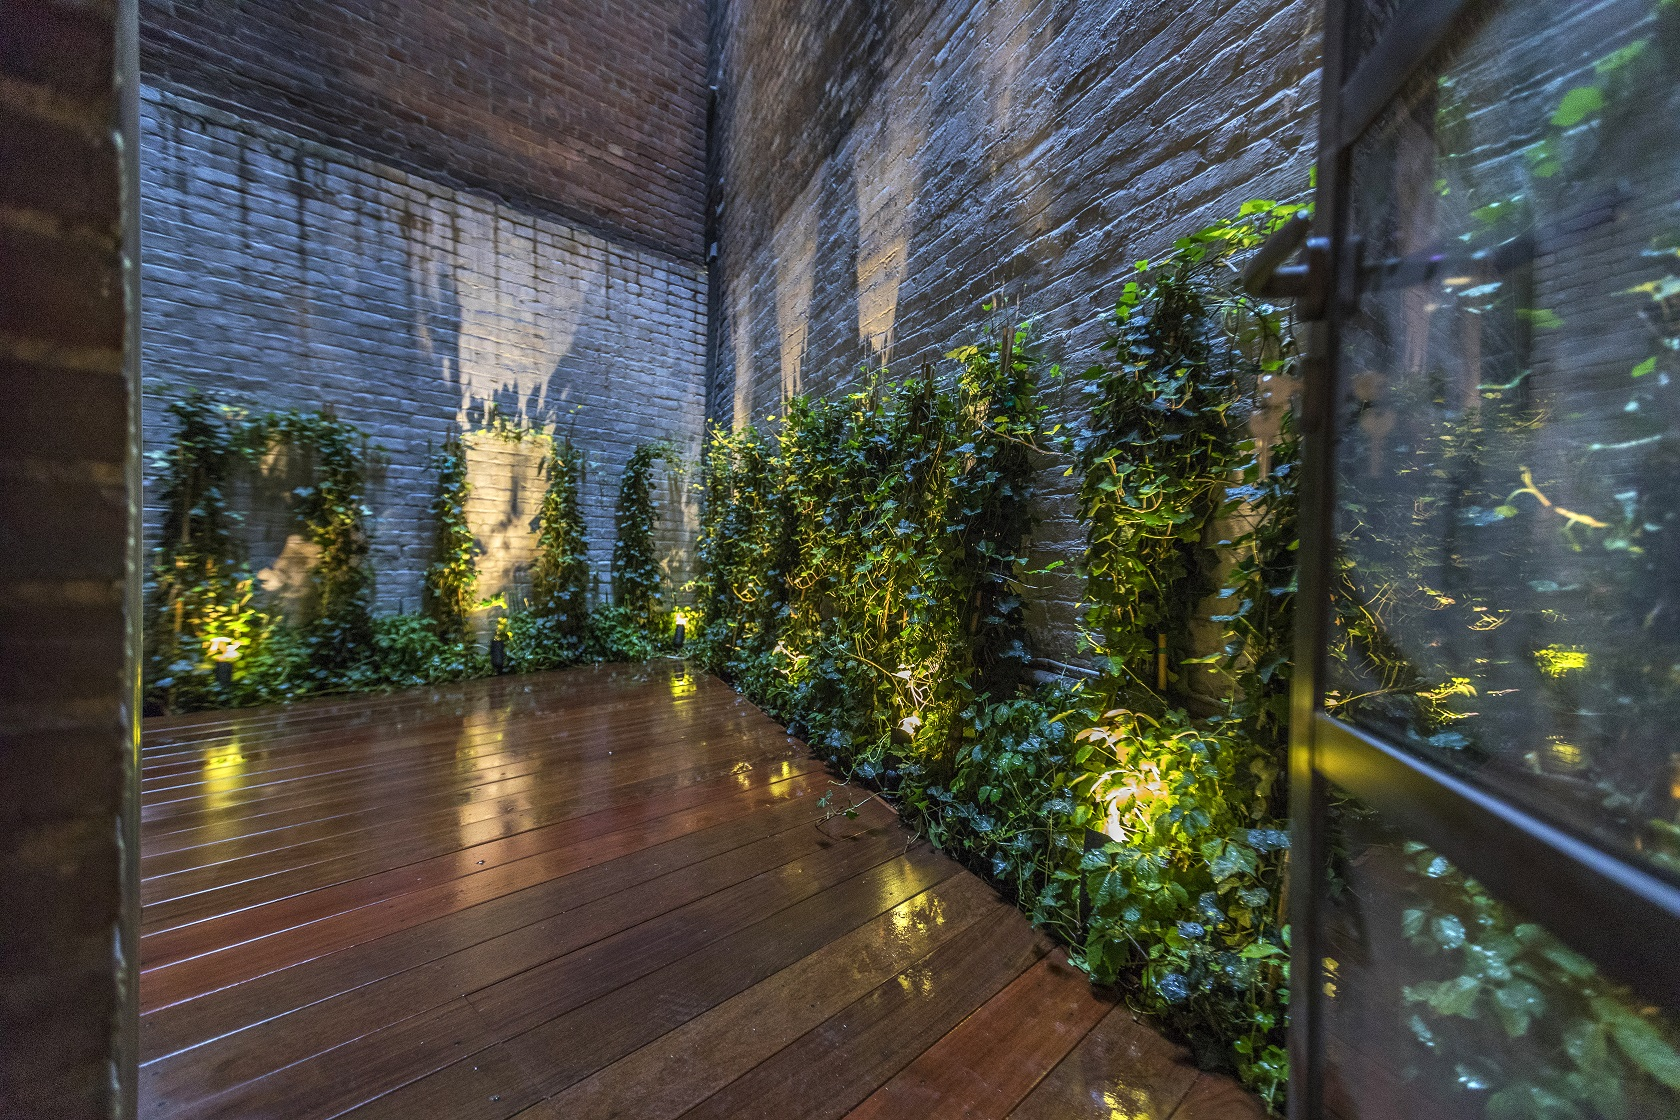 This New York City micro space, nestled between buildings in Tribeca, is transformed into a secret garden